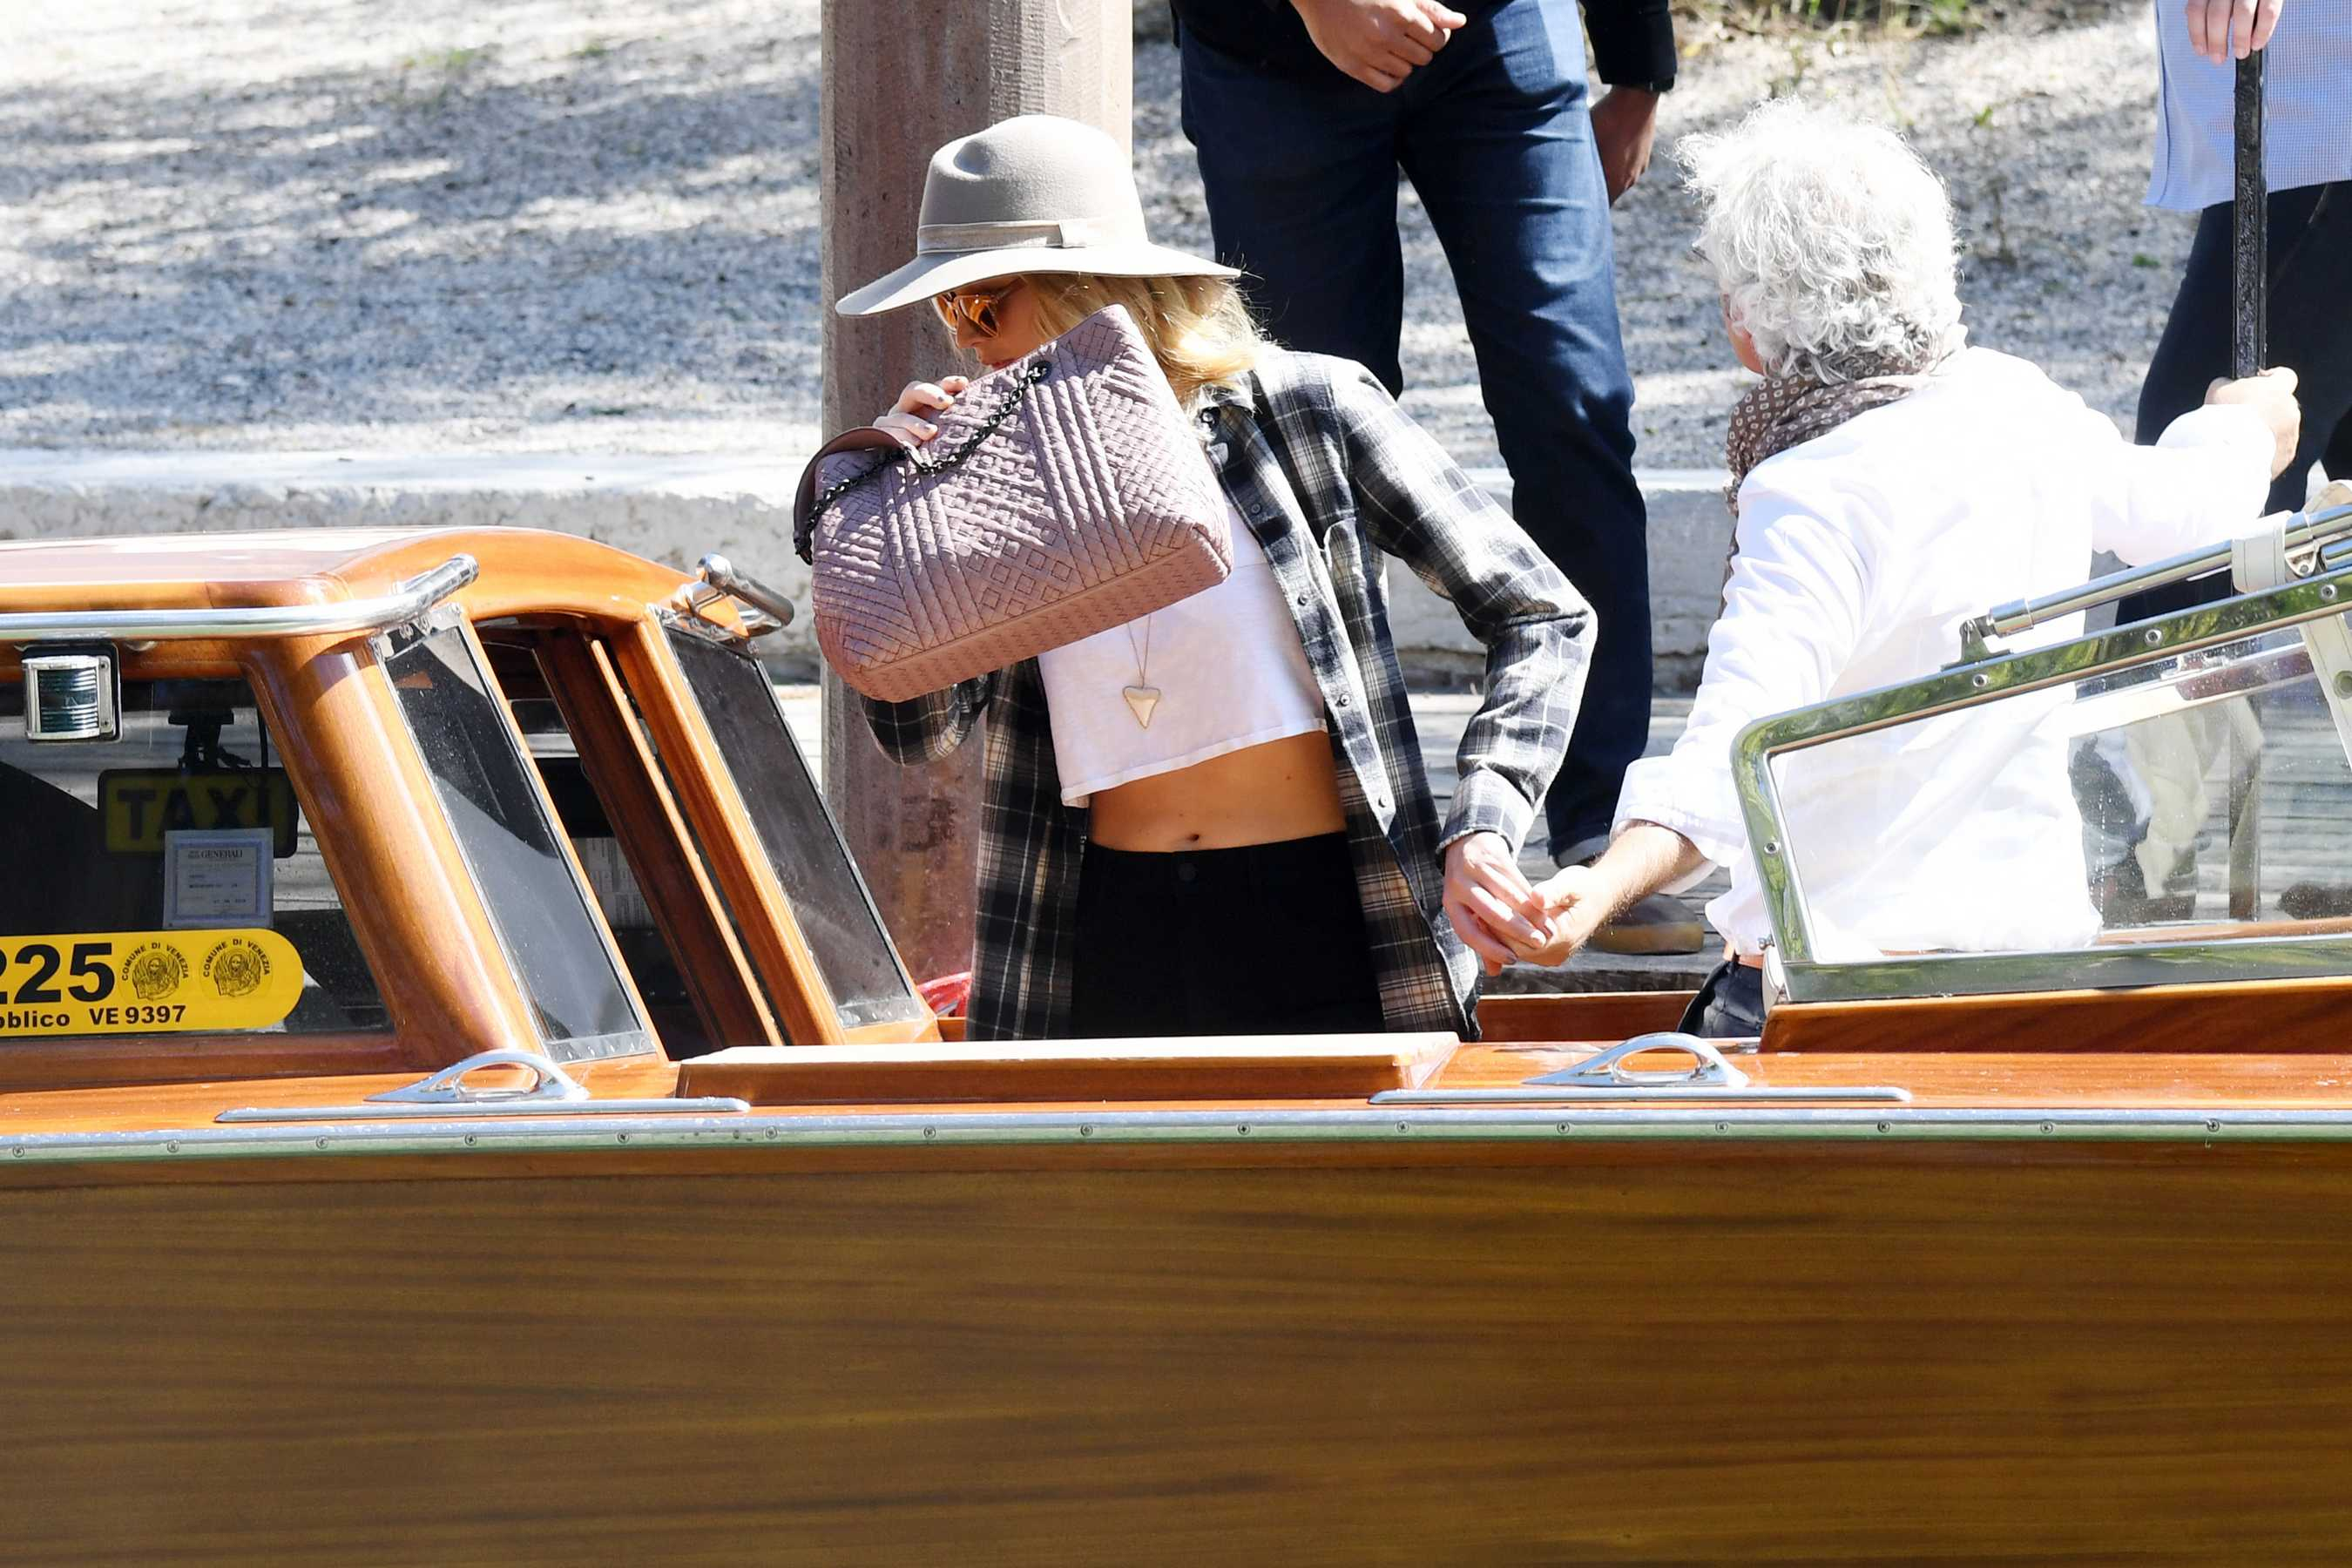 http://jenniferlawrencedaily.com/gallery/albums/userpics/10001/Jennifer_Lawrence_-_In_Venice2C_Italy_on_September_3-35.jpg